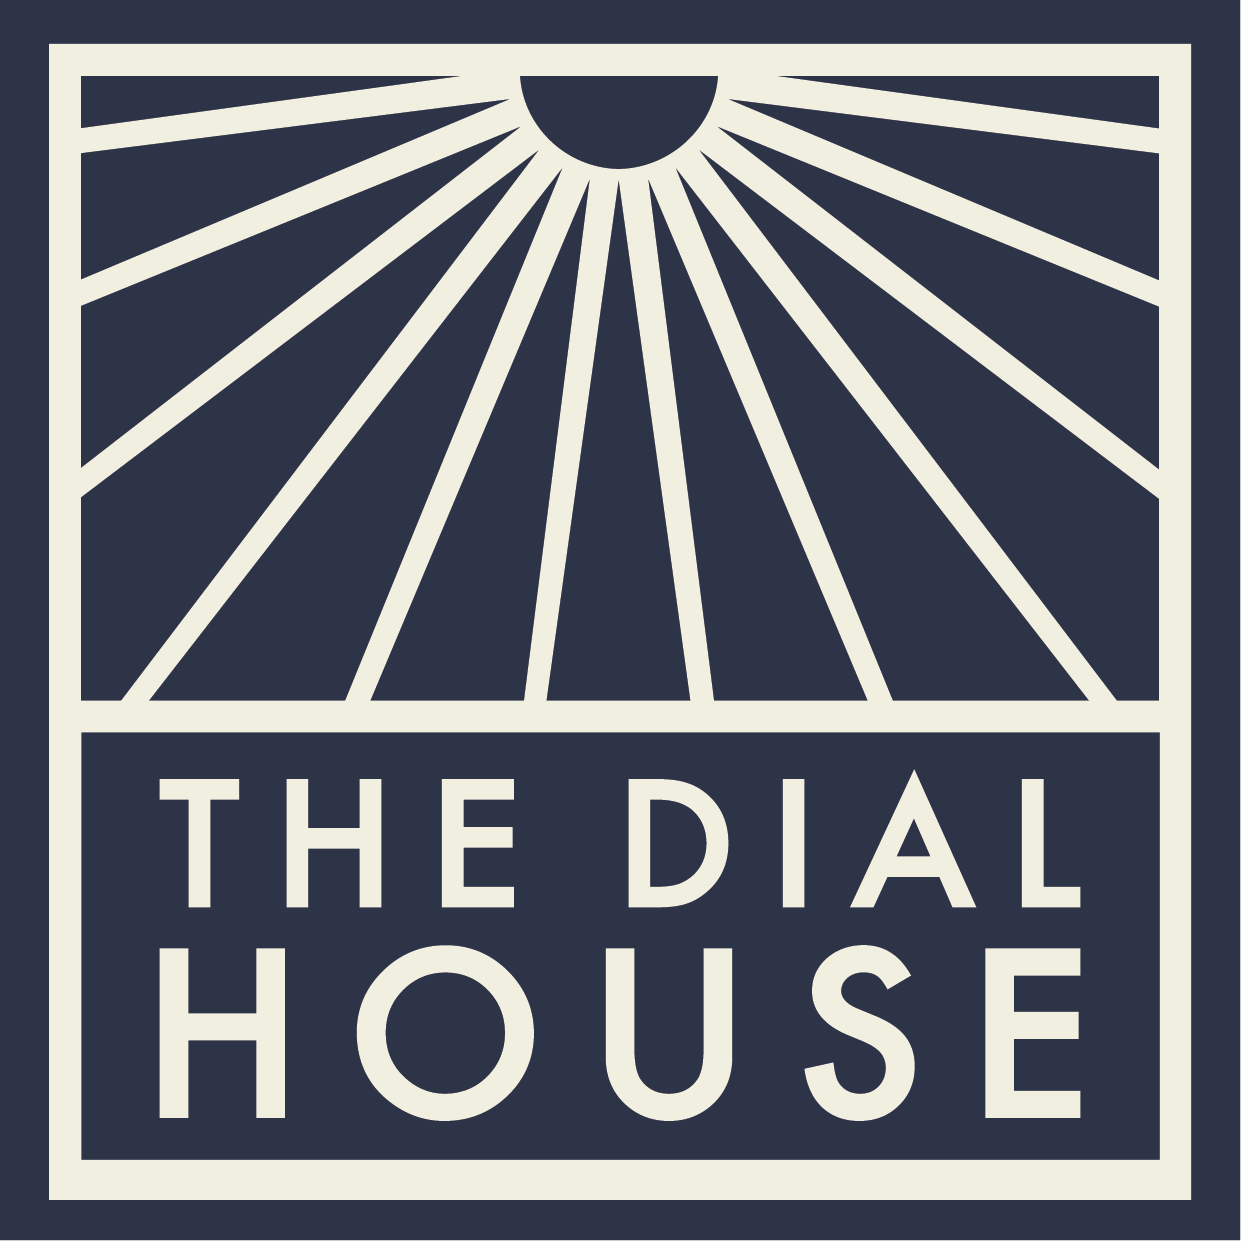 The Dial House logo